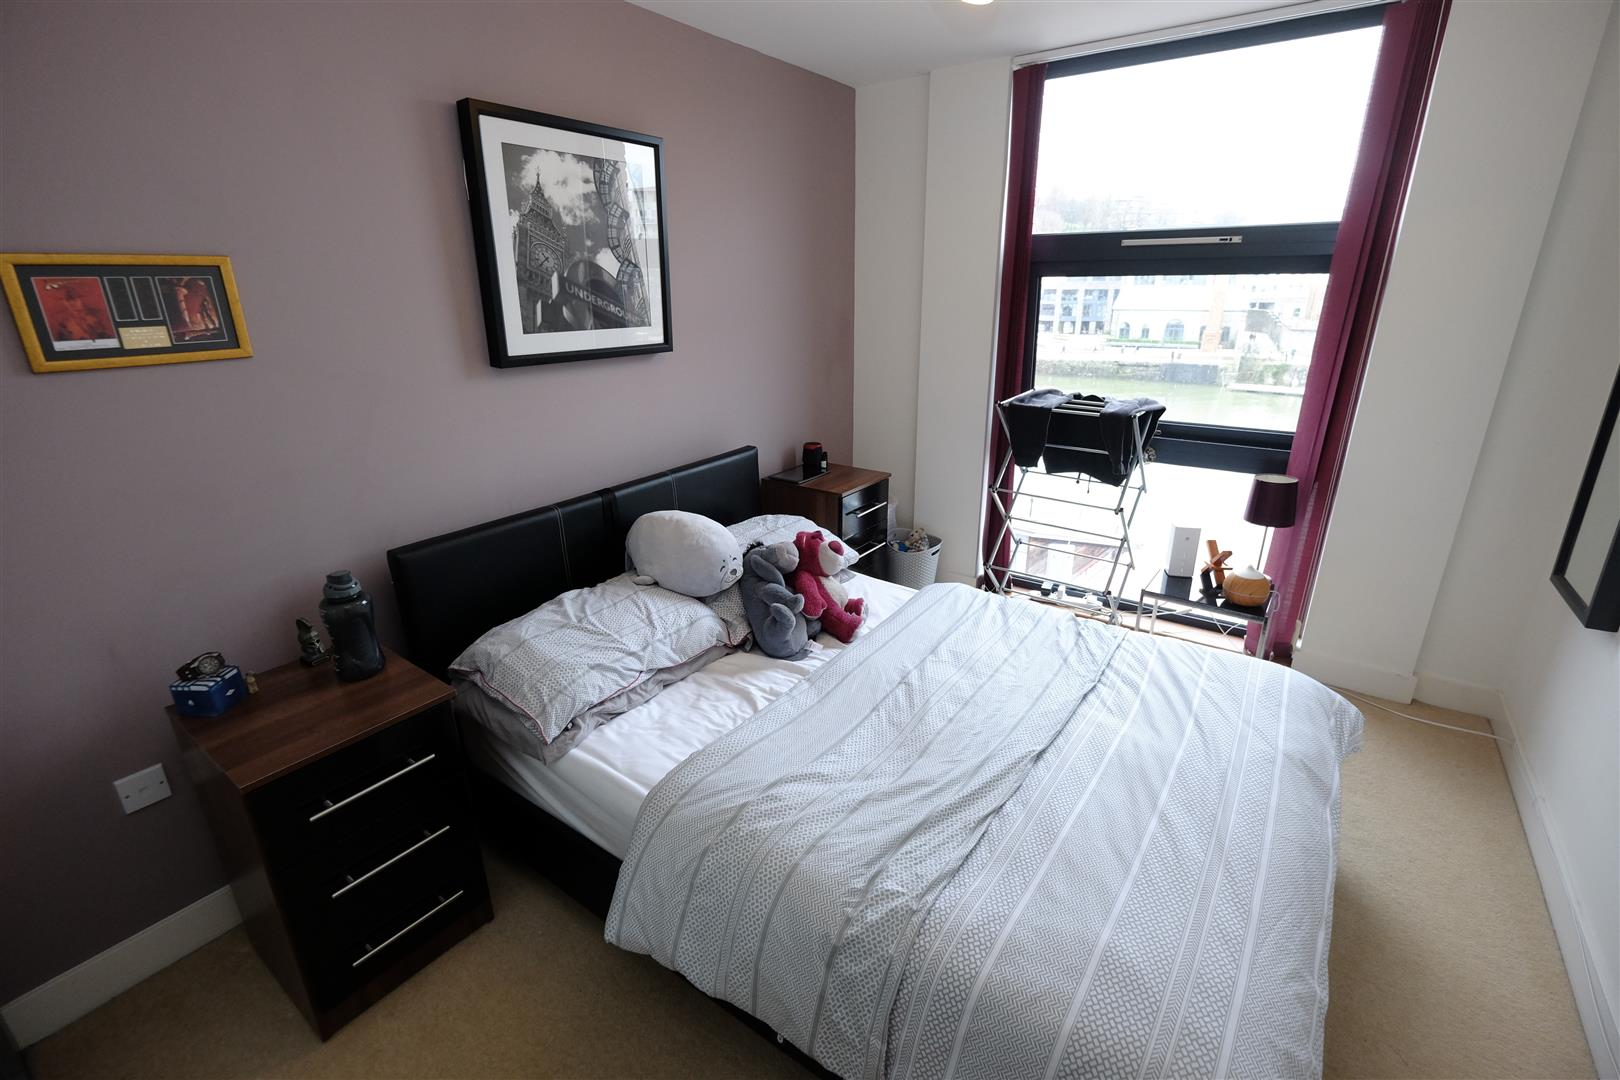 Images for MODERN 1 BED - REDUCED PRICE FOR AUCTION EAID:hollismoapi BID:11